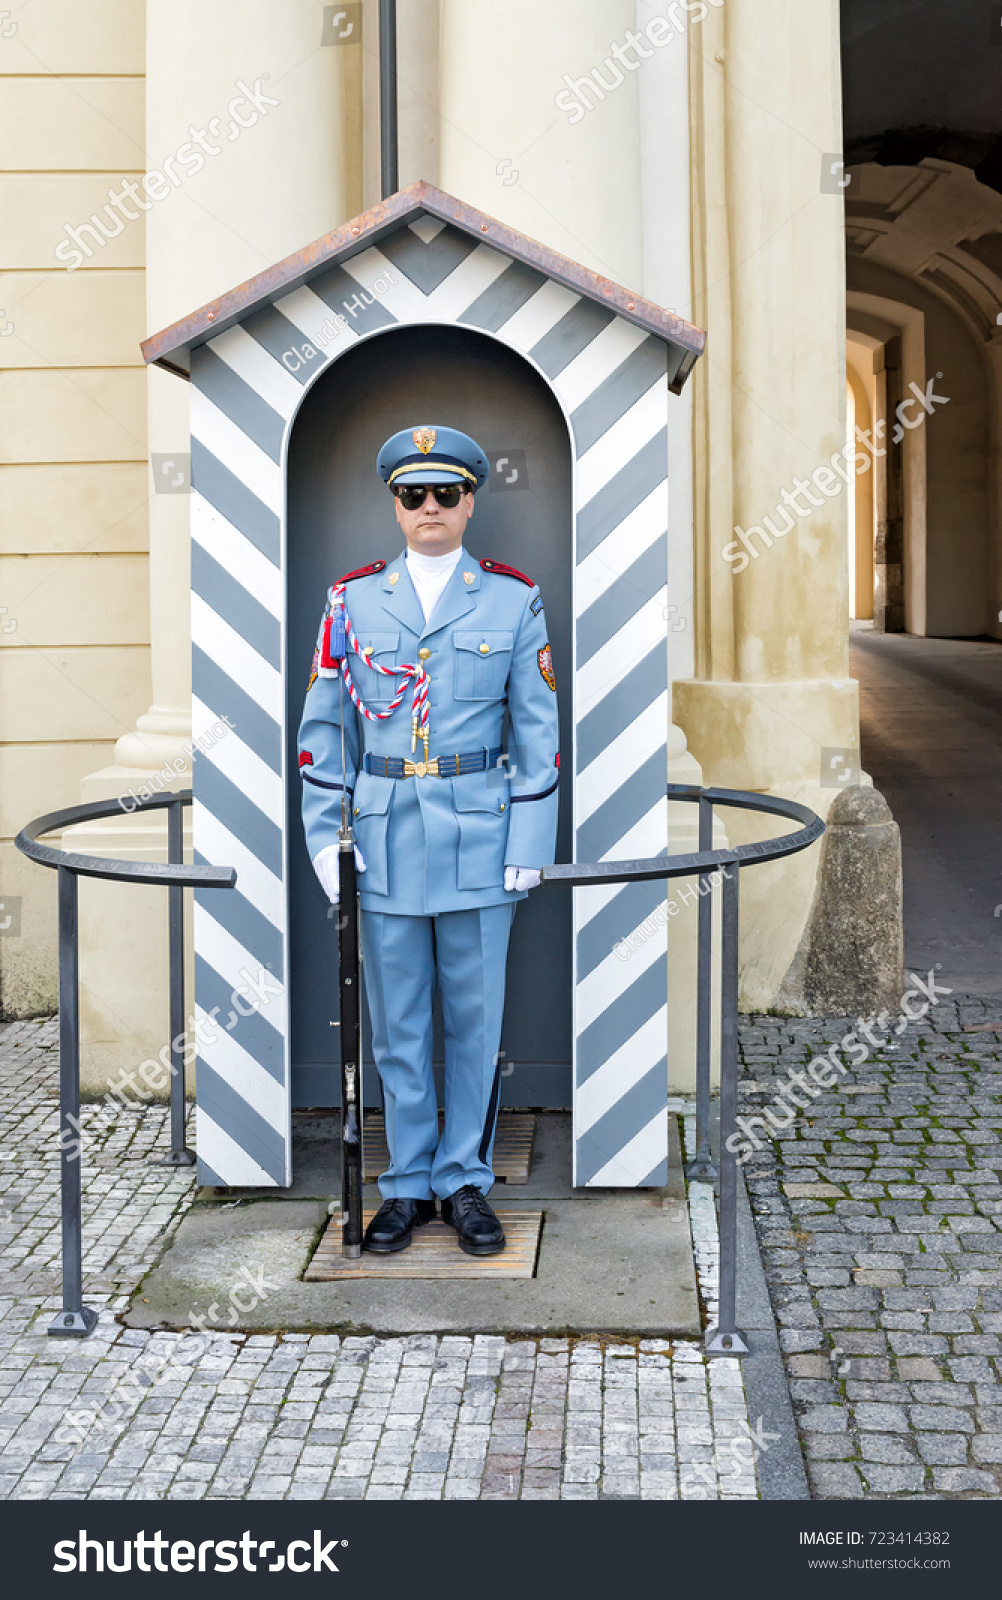 PRAGUE, CZECH REPUBLIC - SEPTEMBER 5, 2017: Military guard stands at attention at the Imperial Stables entrance of the Prague Castle complex which includes the presidential residence.